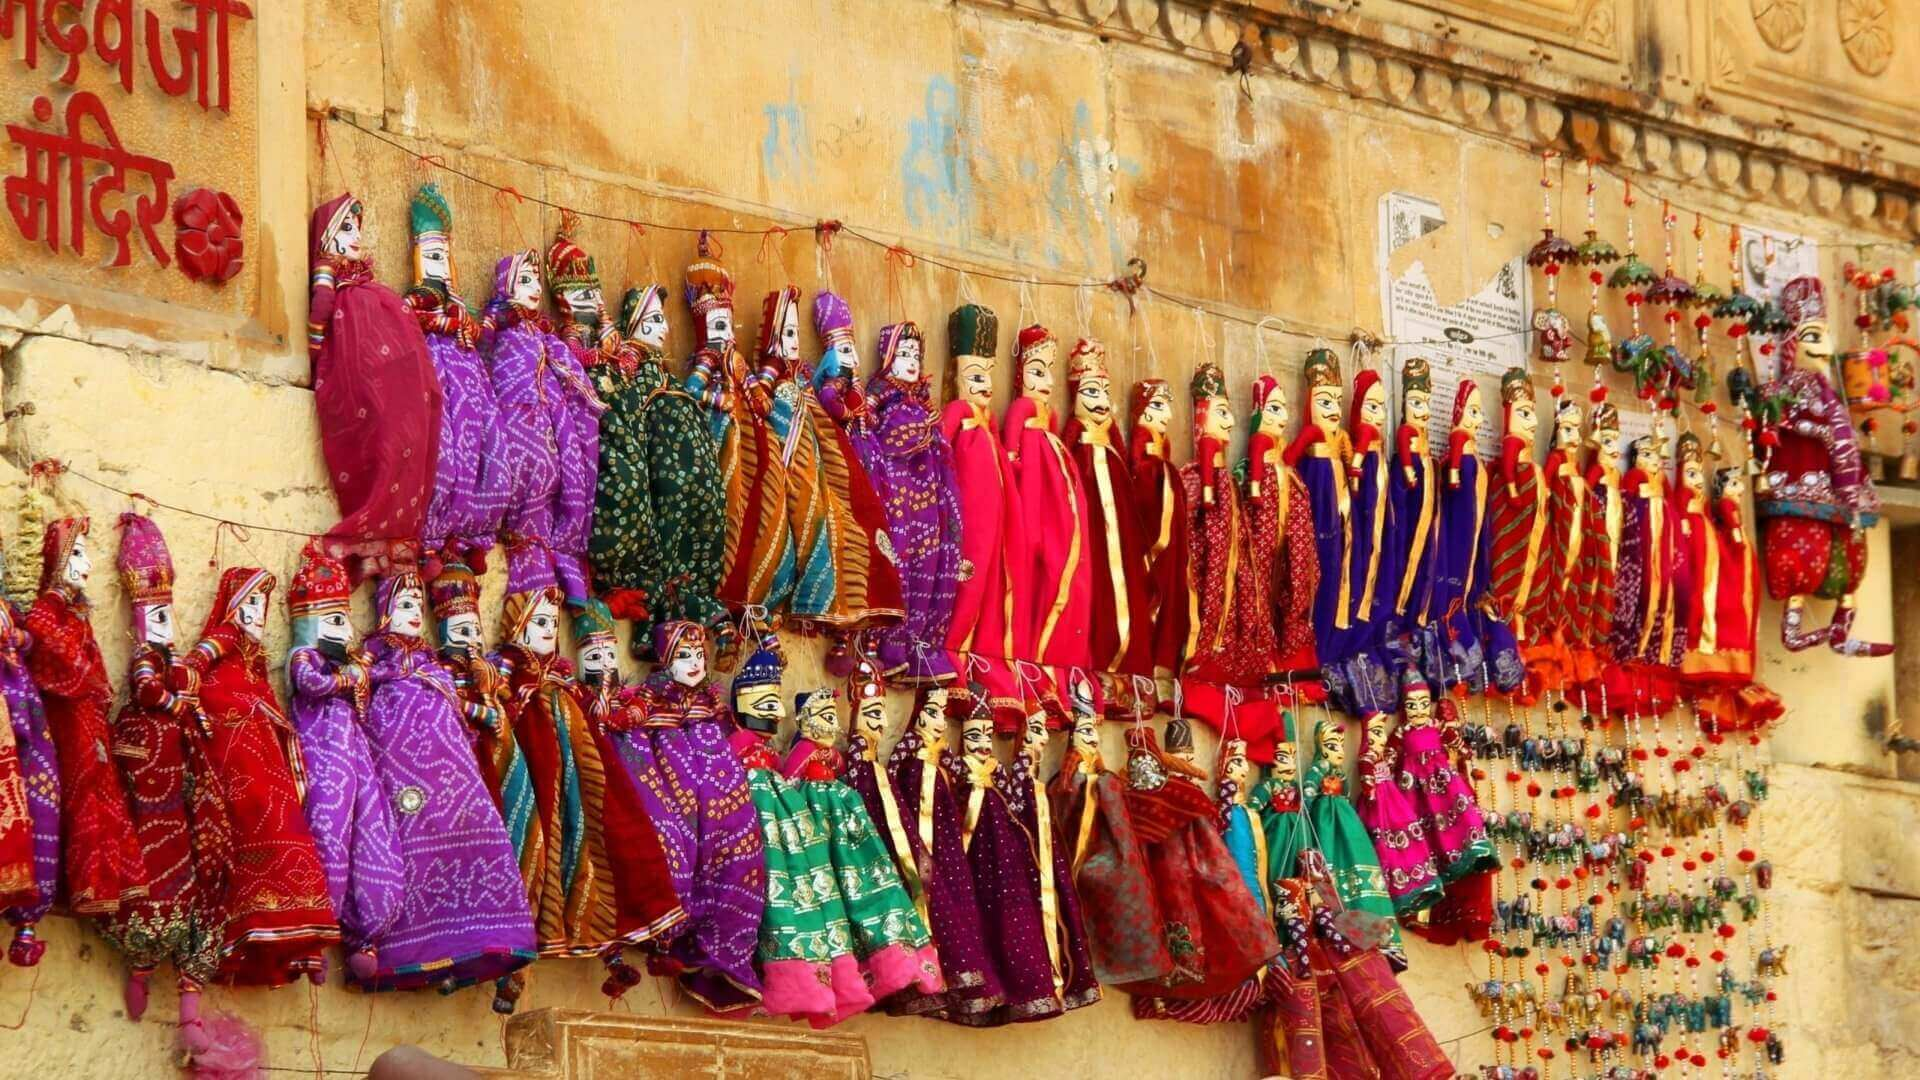 Puppets for sale in Varanasi by Jasmine Trails